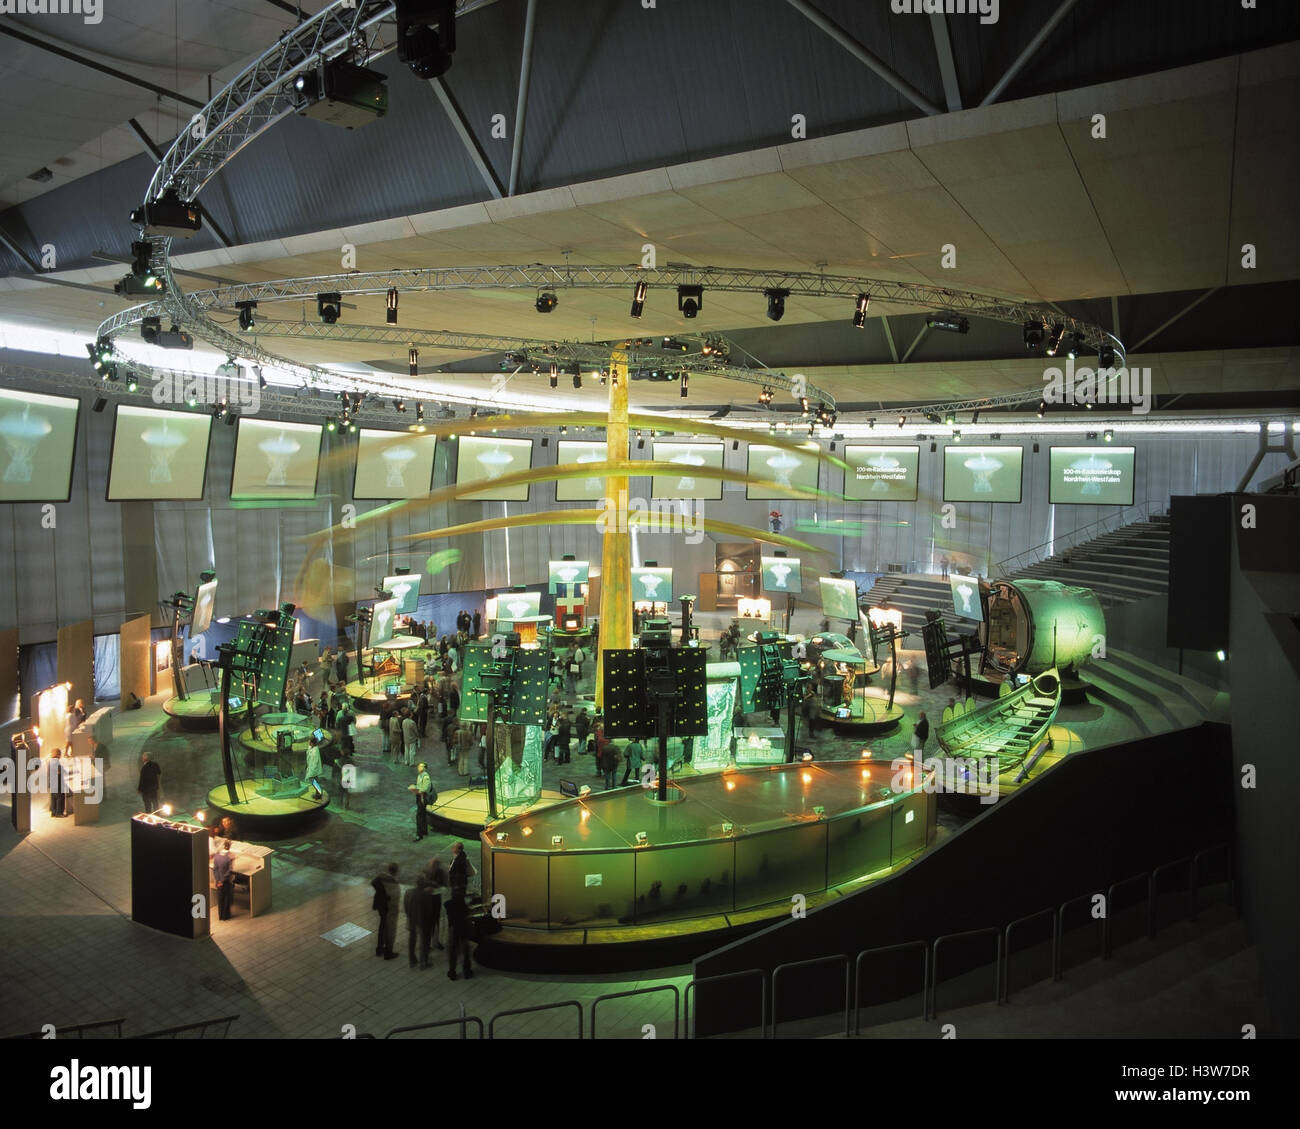 D Printer Exhibition Germany : Expo stock photos images alamy